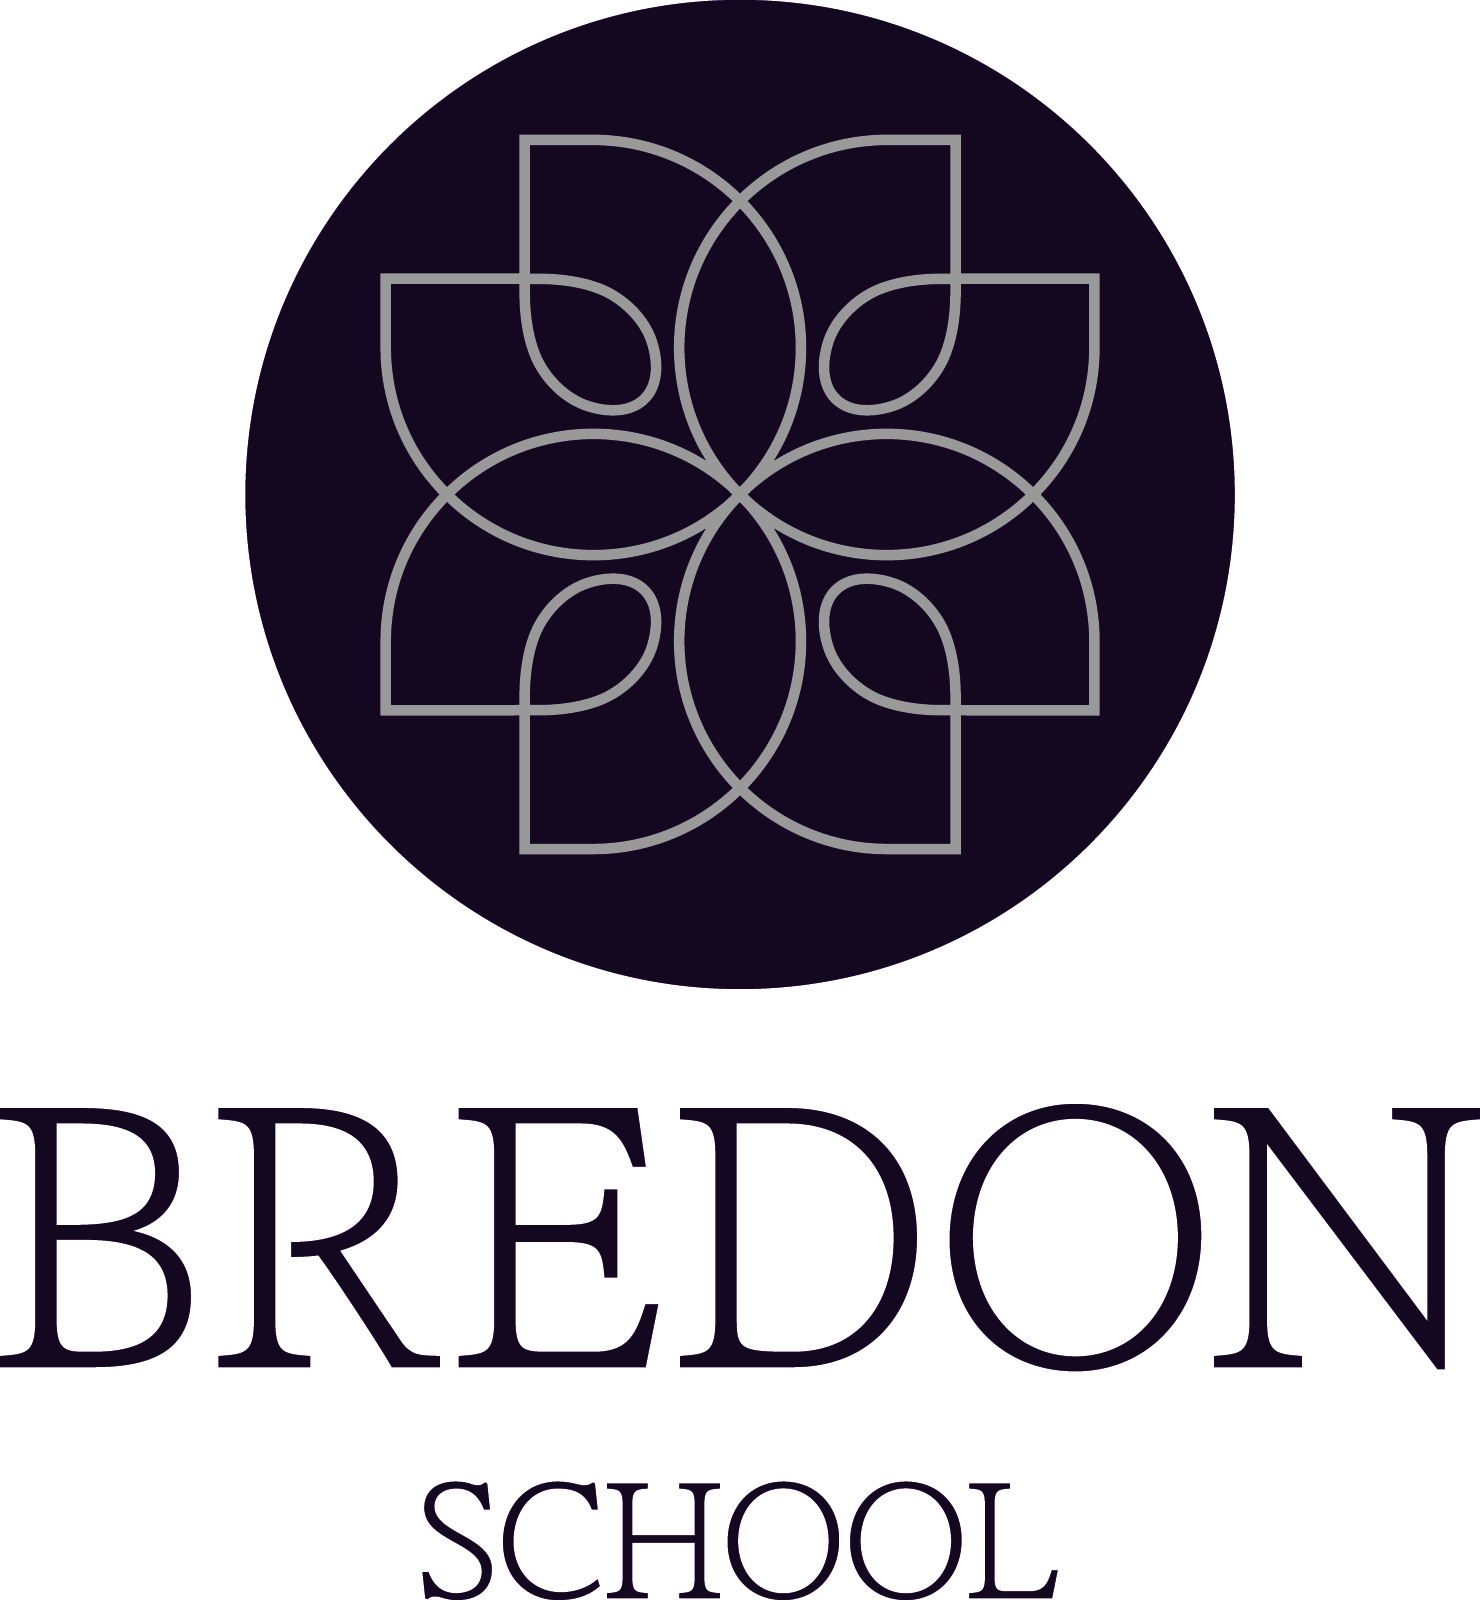 Bredon School | Dickinson britische Internatsberatung